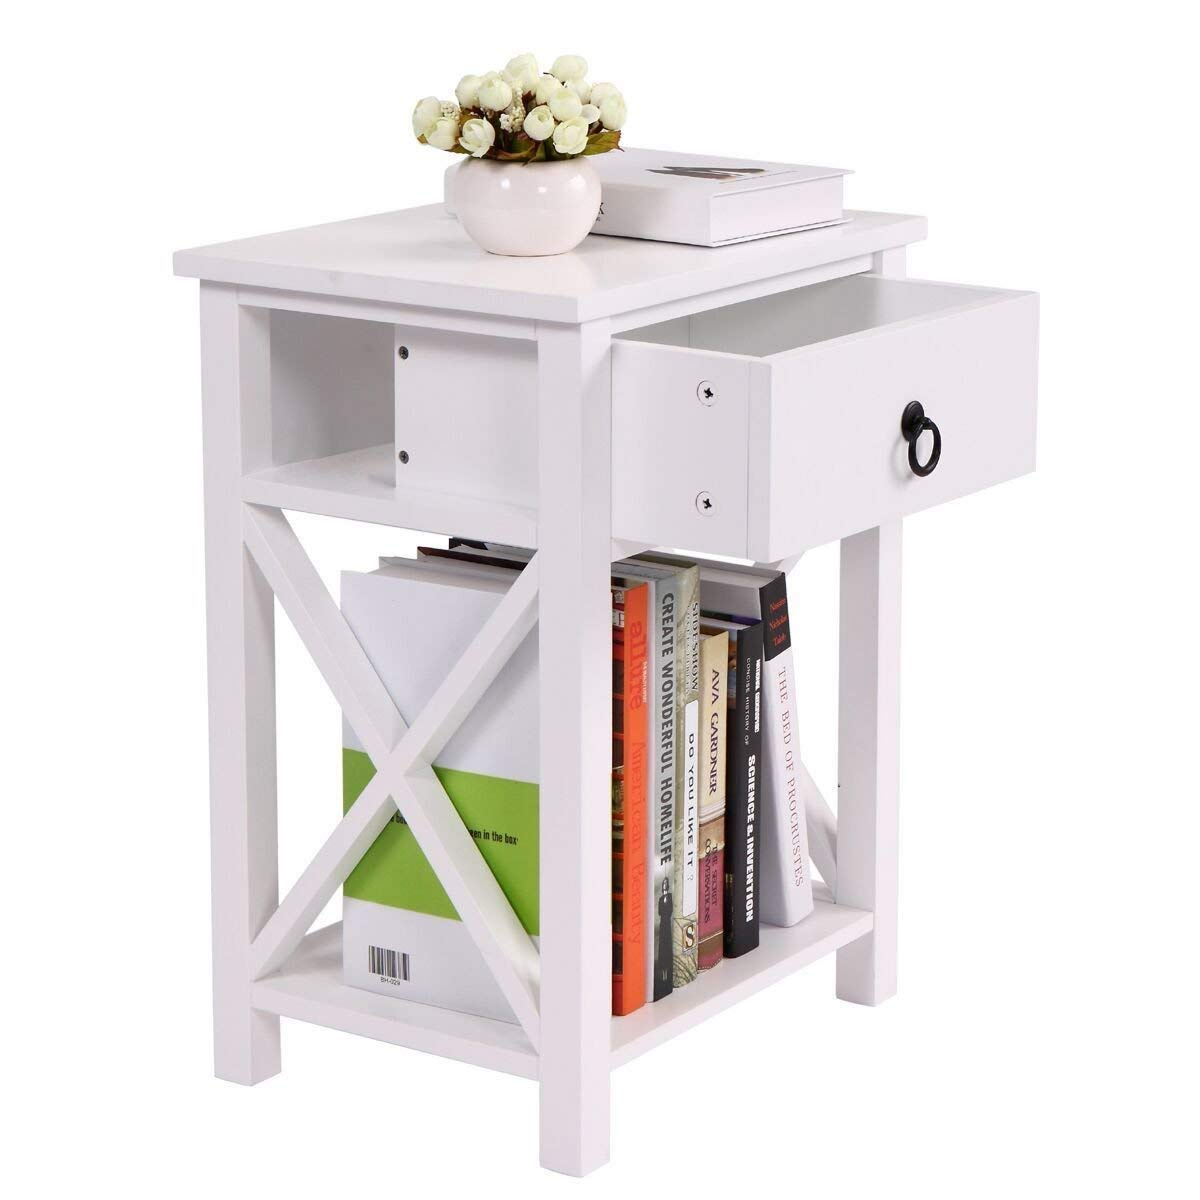 Driftingwood sheesham wood bed side table for living room bedside table for bedroom 1 drawer with shelve side table white